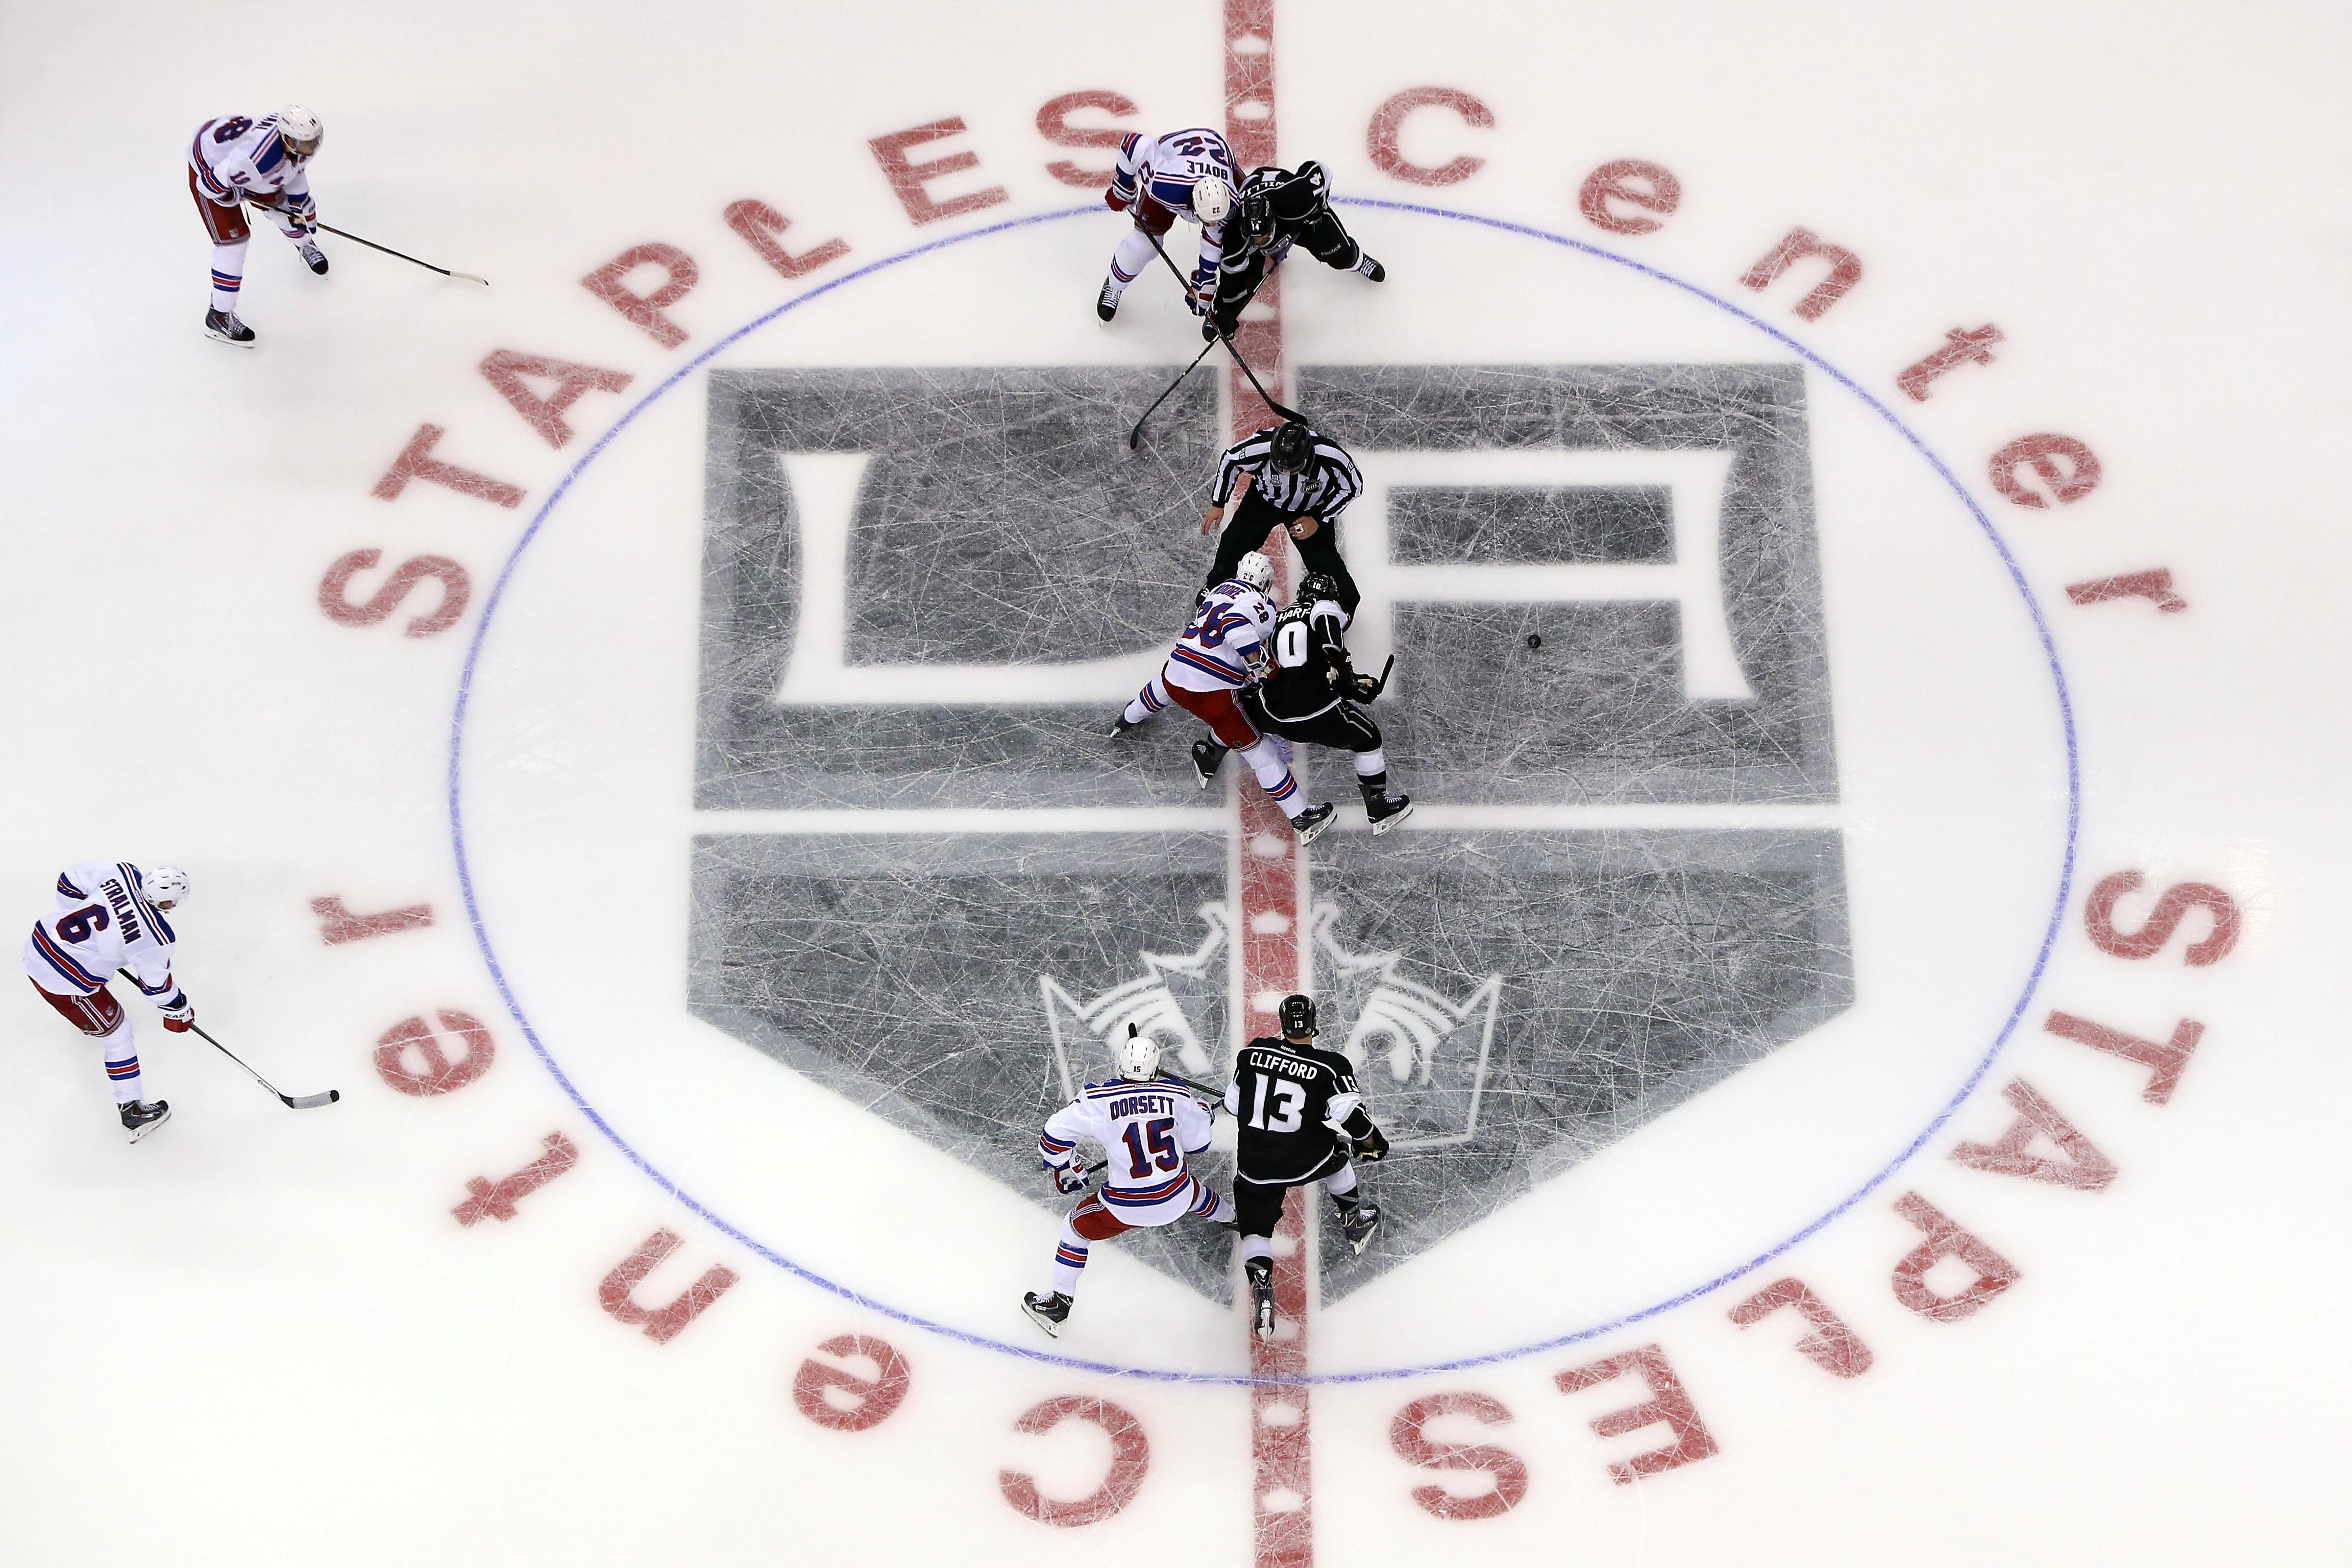 The New York Rangers face off against the Los Angeles Kings over the center ice logo against the Los Angeles Kings during Game One of the 2014 NHL Stanley Cup Final at the Staples Center on June 4, 2014 in Los Angeles, California. (Photo by Victor Decolongon/Getty Images)